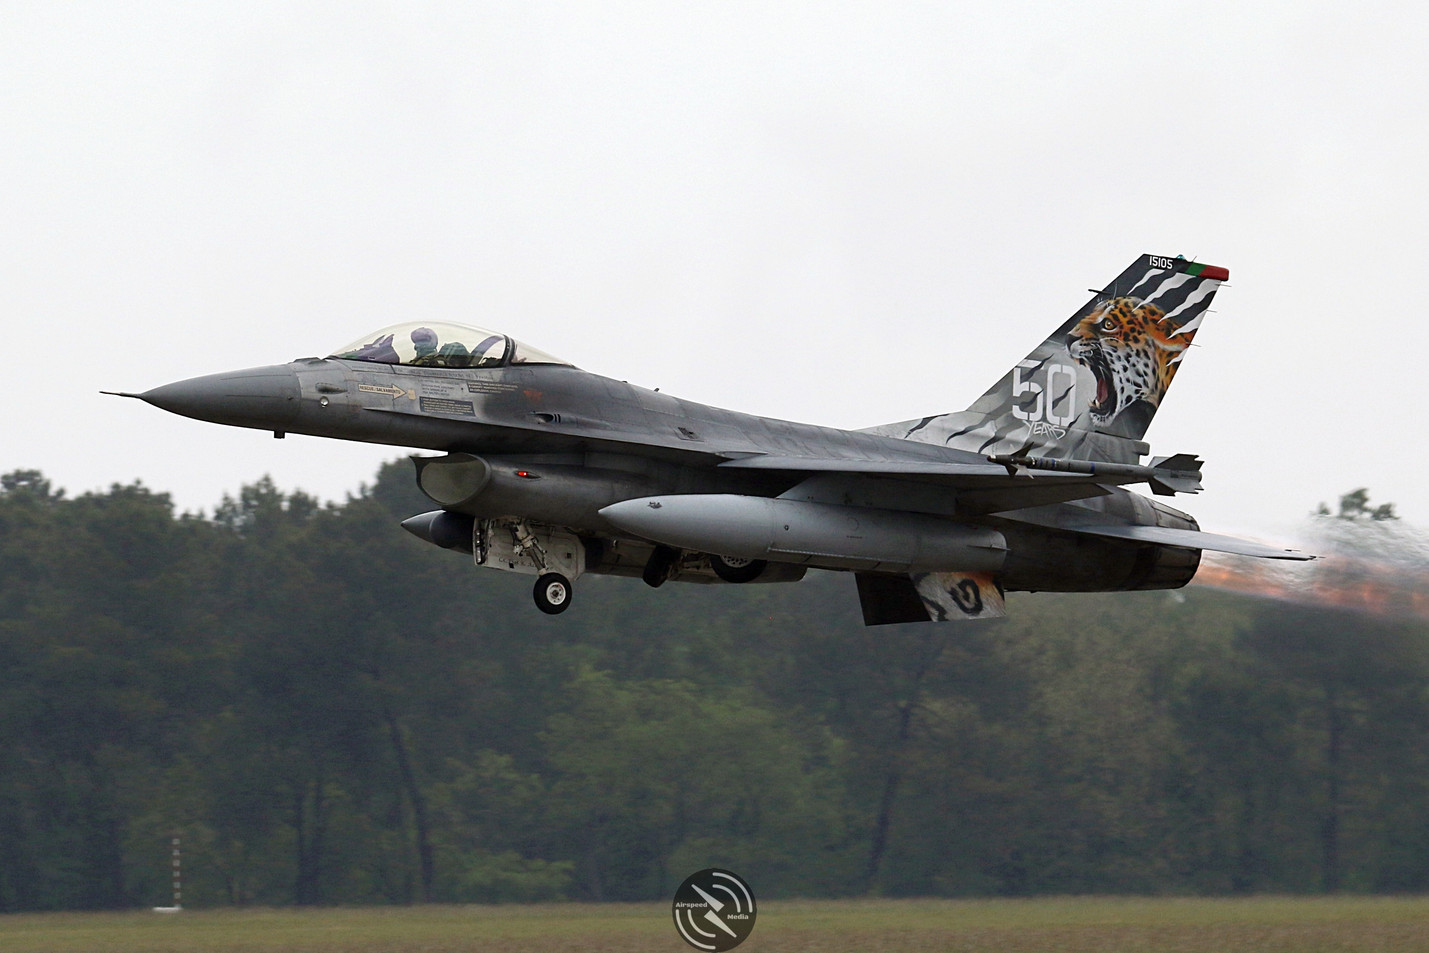 FAP F16 Nato Tiger Meet 2019.JPG